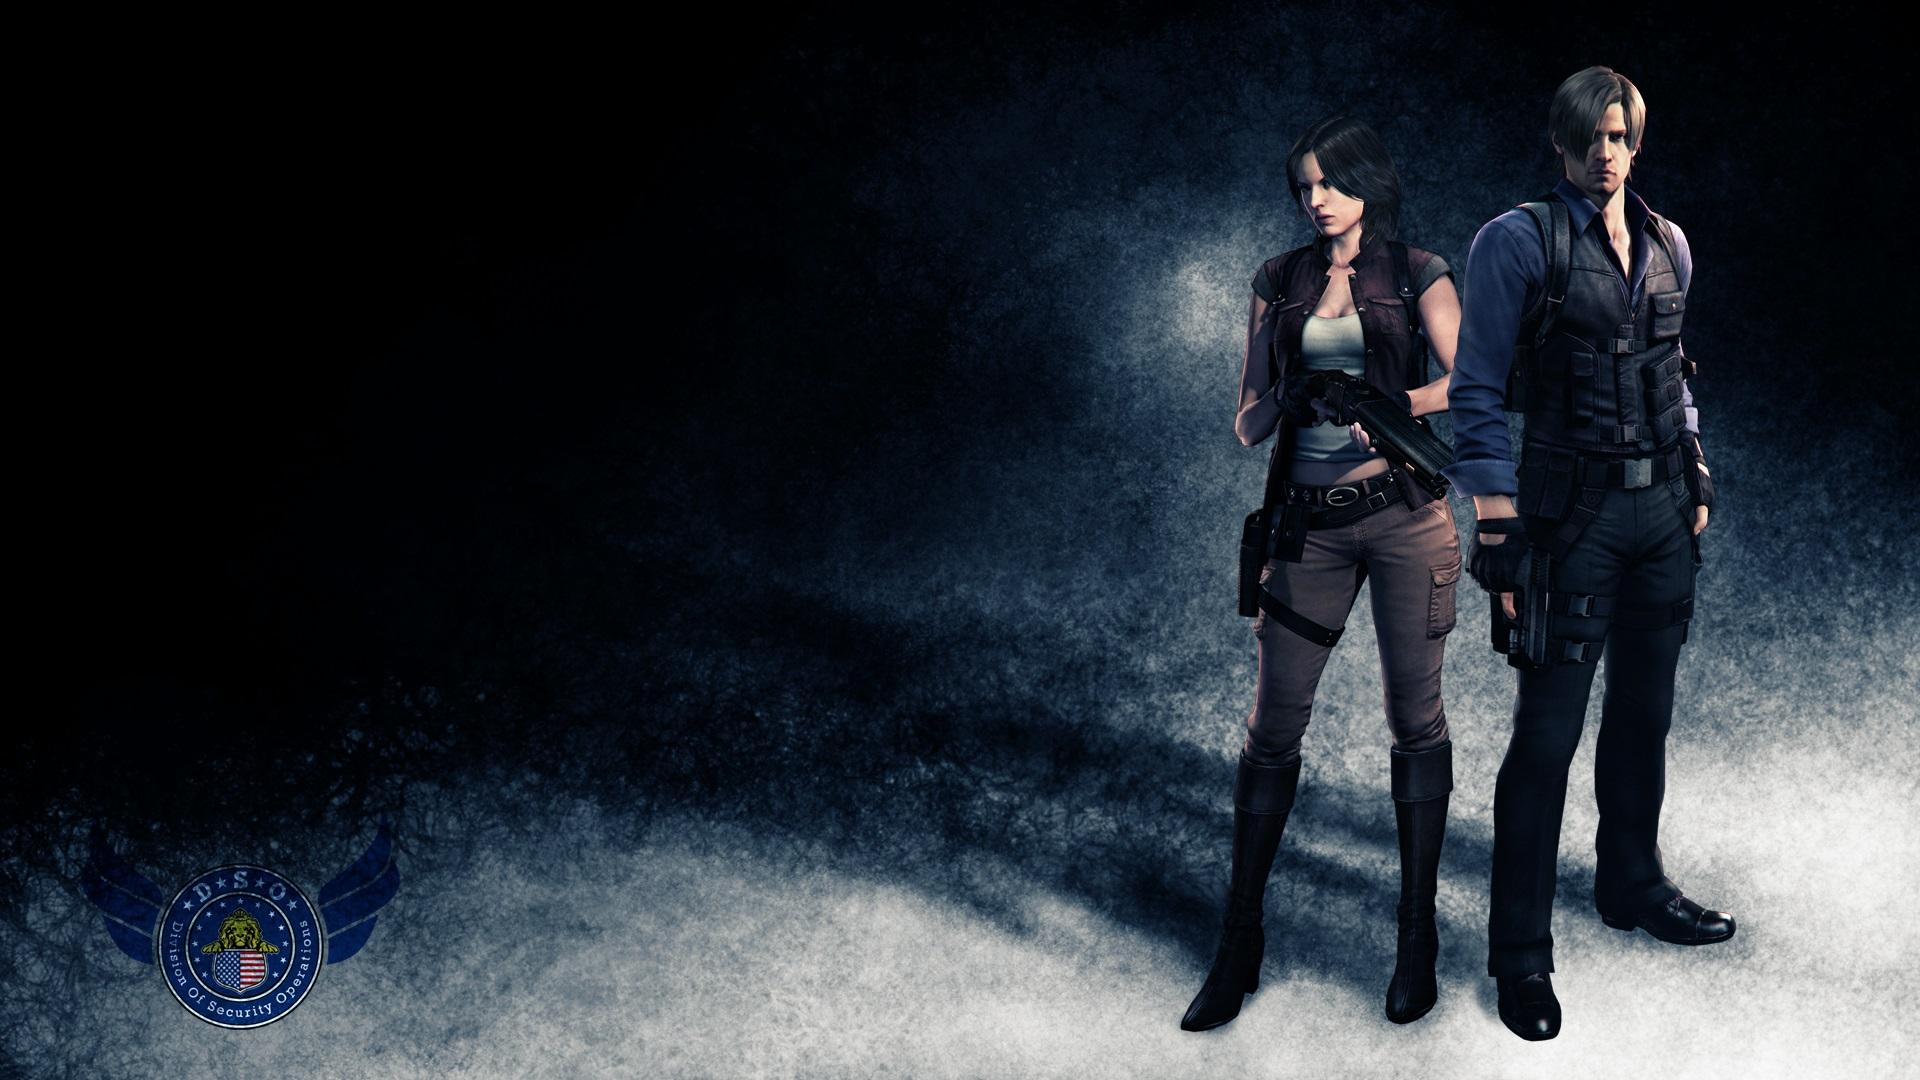 Resident Evil 6 Hd Wallpapers Wallpaper Cave